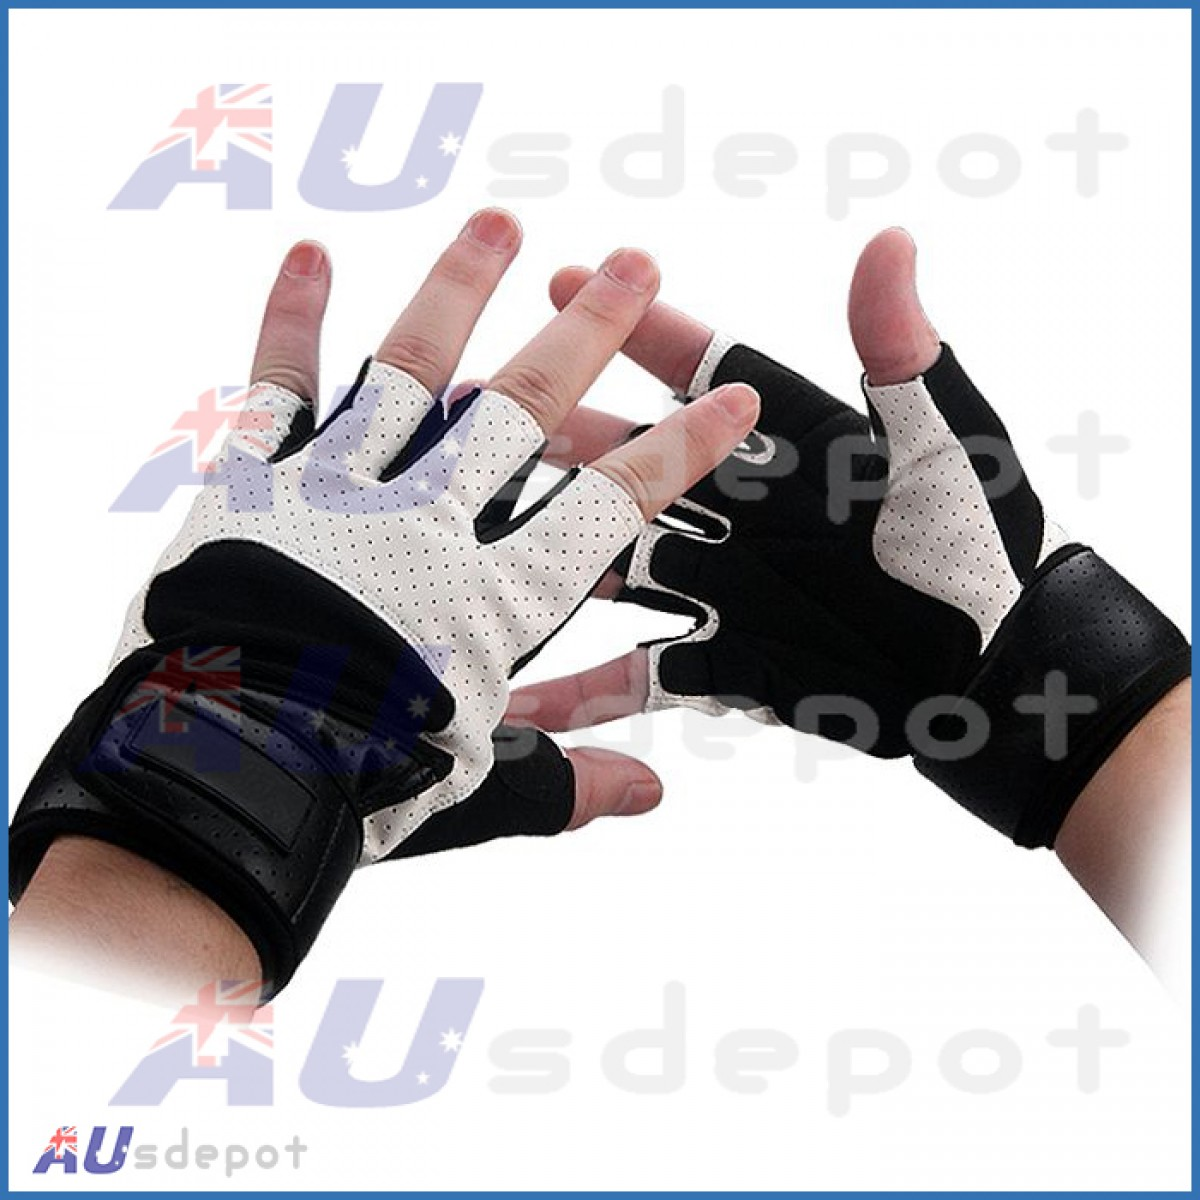 Gym Gloves Weight Lifting Leather Wrist Support Glove Aud: Gym Gloves Weight Lifting Leather Wrist Support Glove AUD